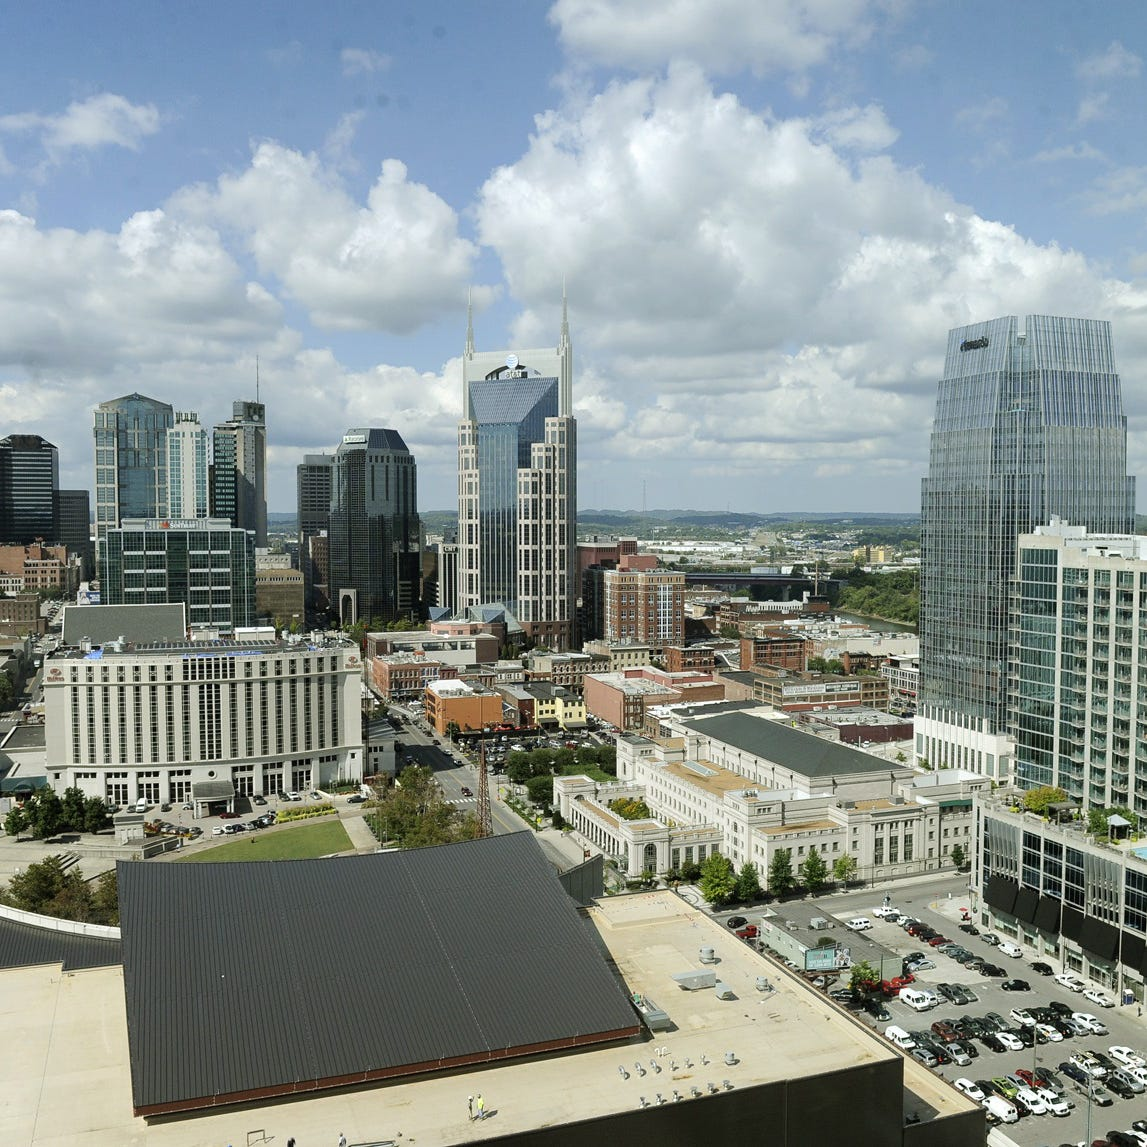 Nashville is cracking down on illegal Airbnb operators